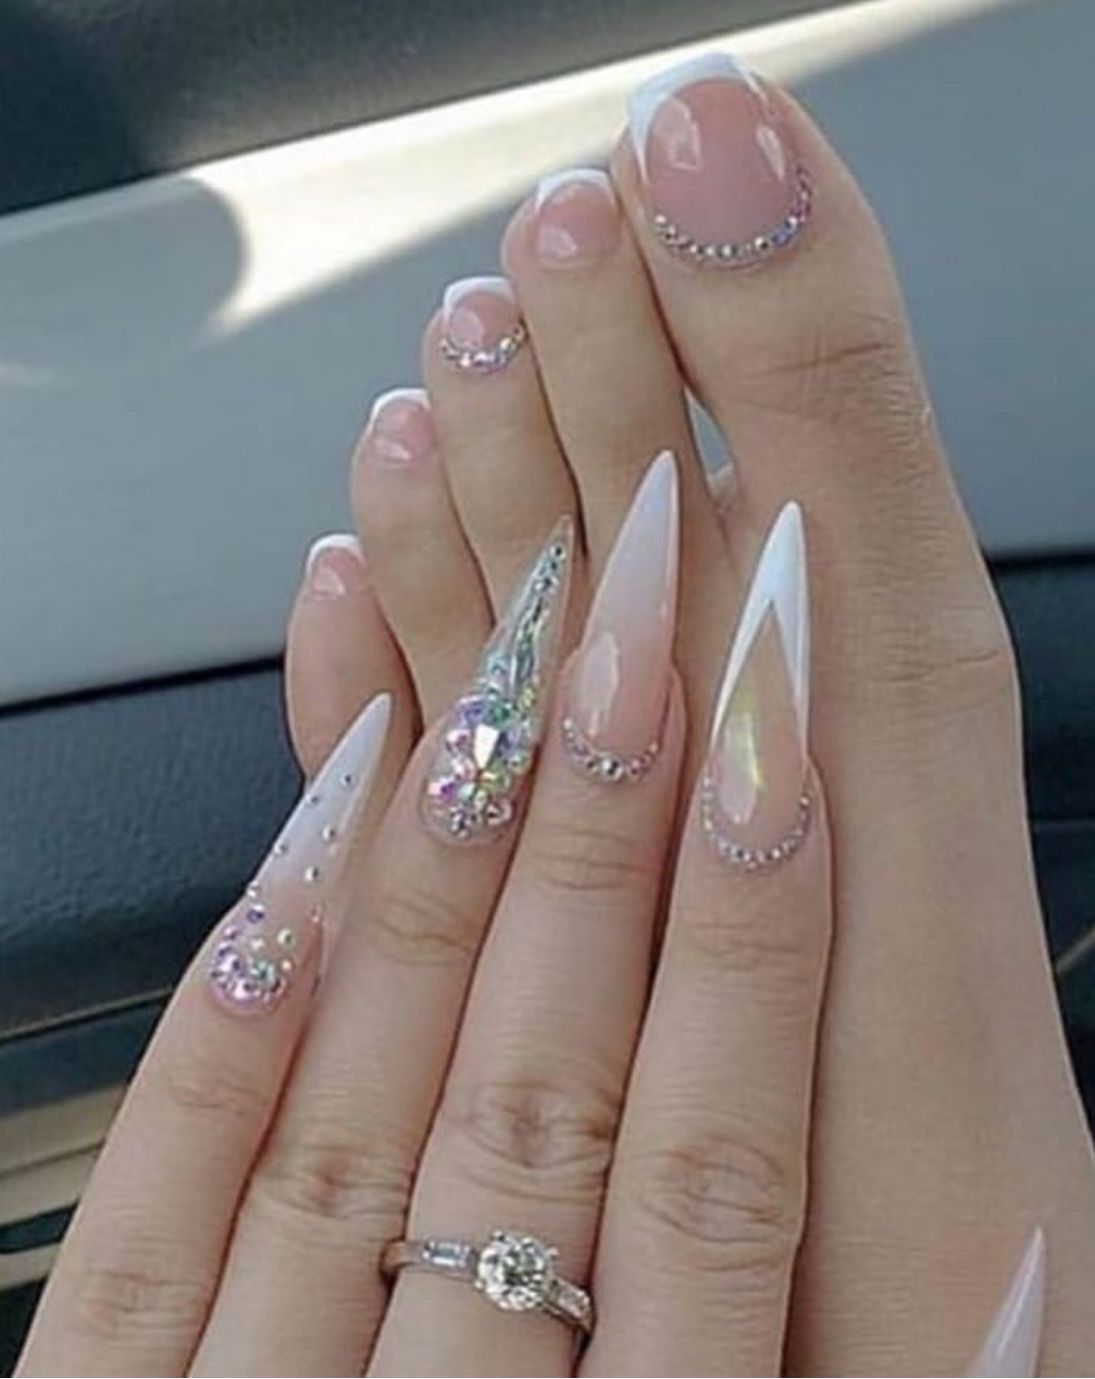 40+ Shimmering Nail Design Ideas - The Glossychic